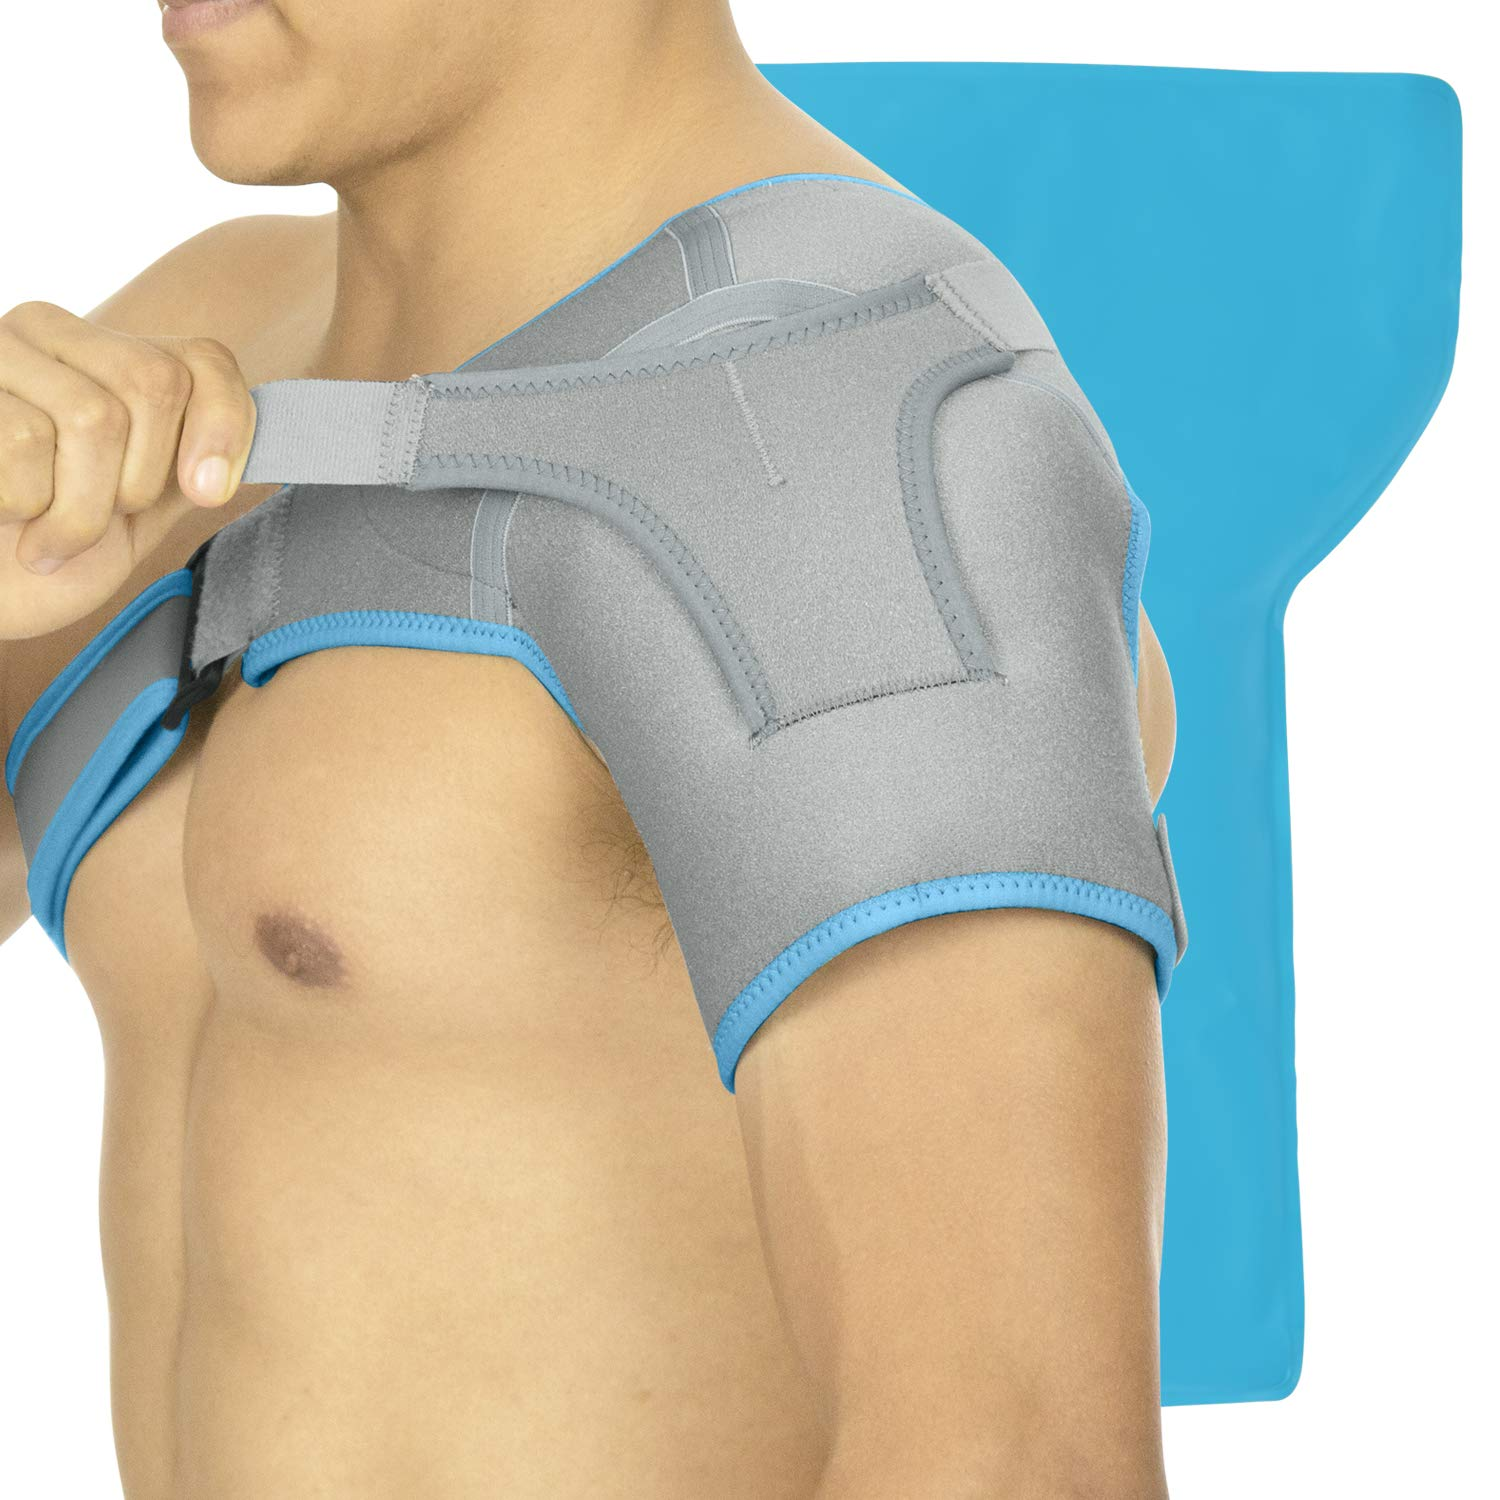 Arctic Flex Shoulder Ice Pack Brace - Cold Reusable Cool Gel Wrap, Hot Therapy - Immobilizer Compression Stability Support for Tendonitis, Dislocated Joint, Left and Right Rotator Cuff Arm Pain Relief